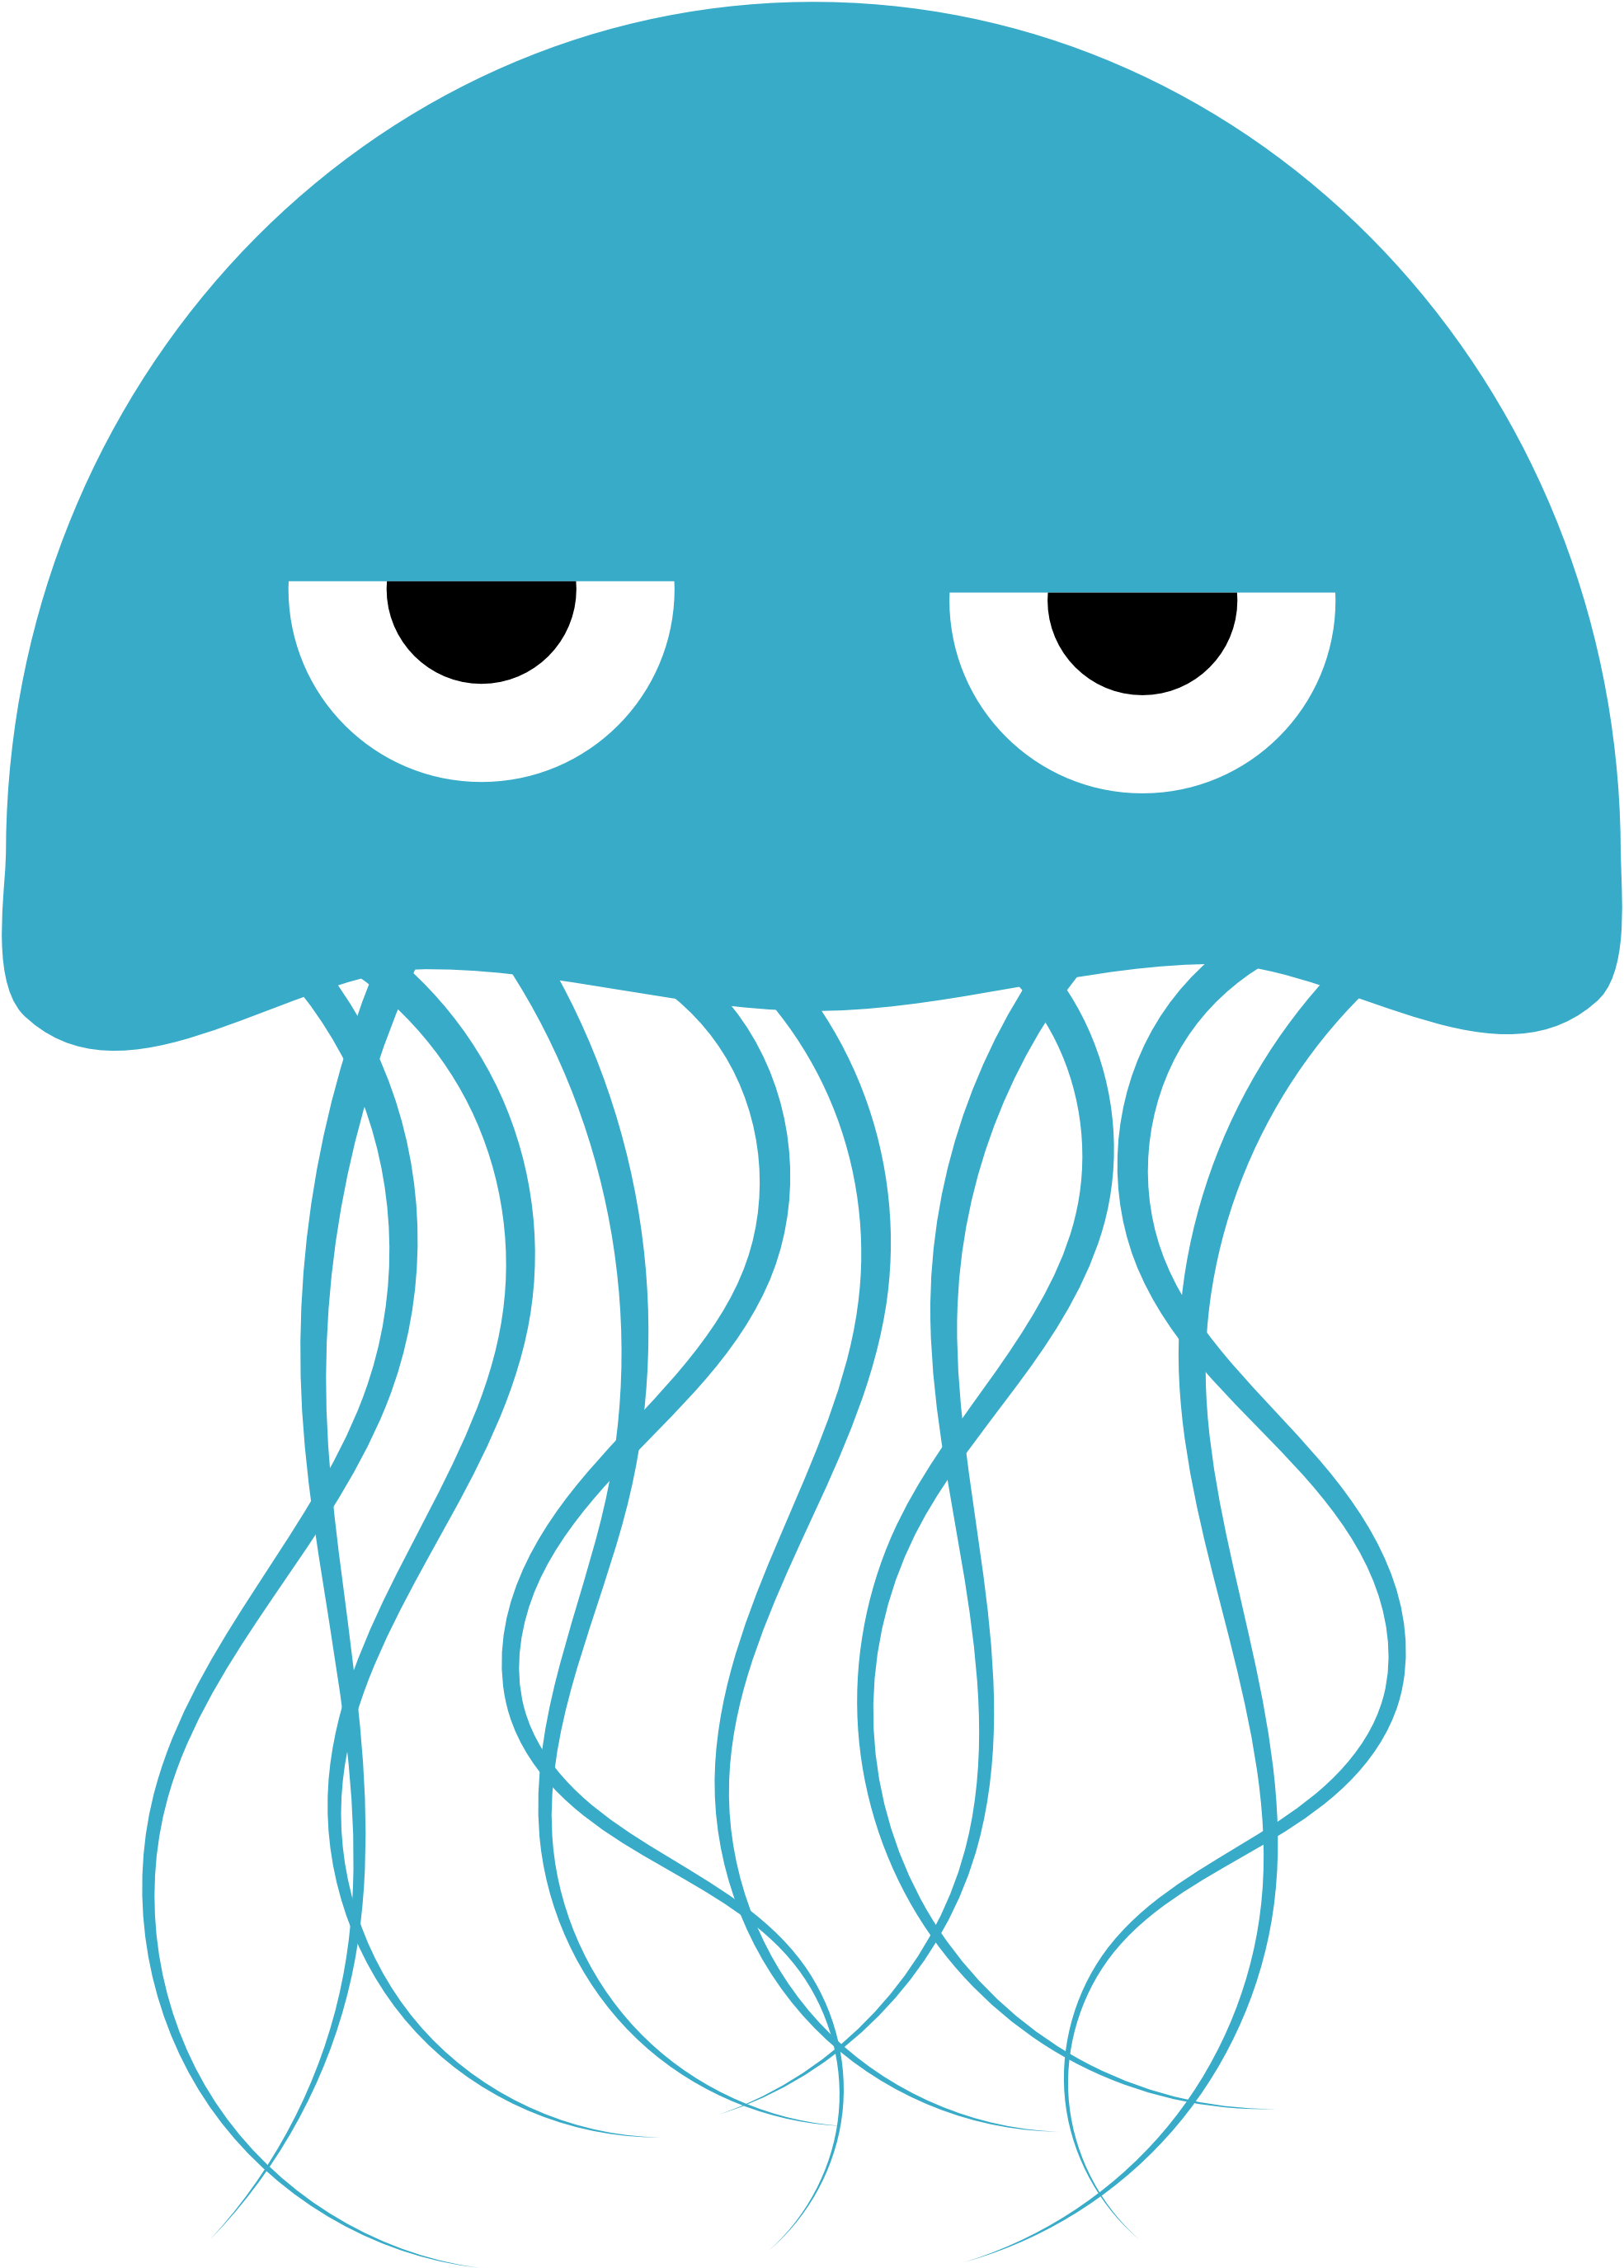 Jellyfish clipart png transparent background clipart freeuse library Jellyfish clipart png transparent background - ClipartFest clipart freeuse library